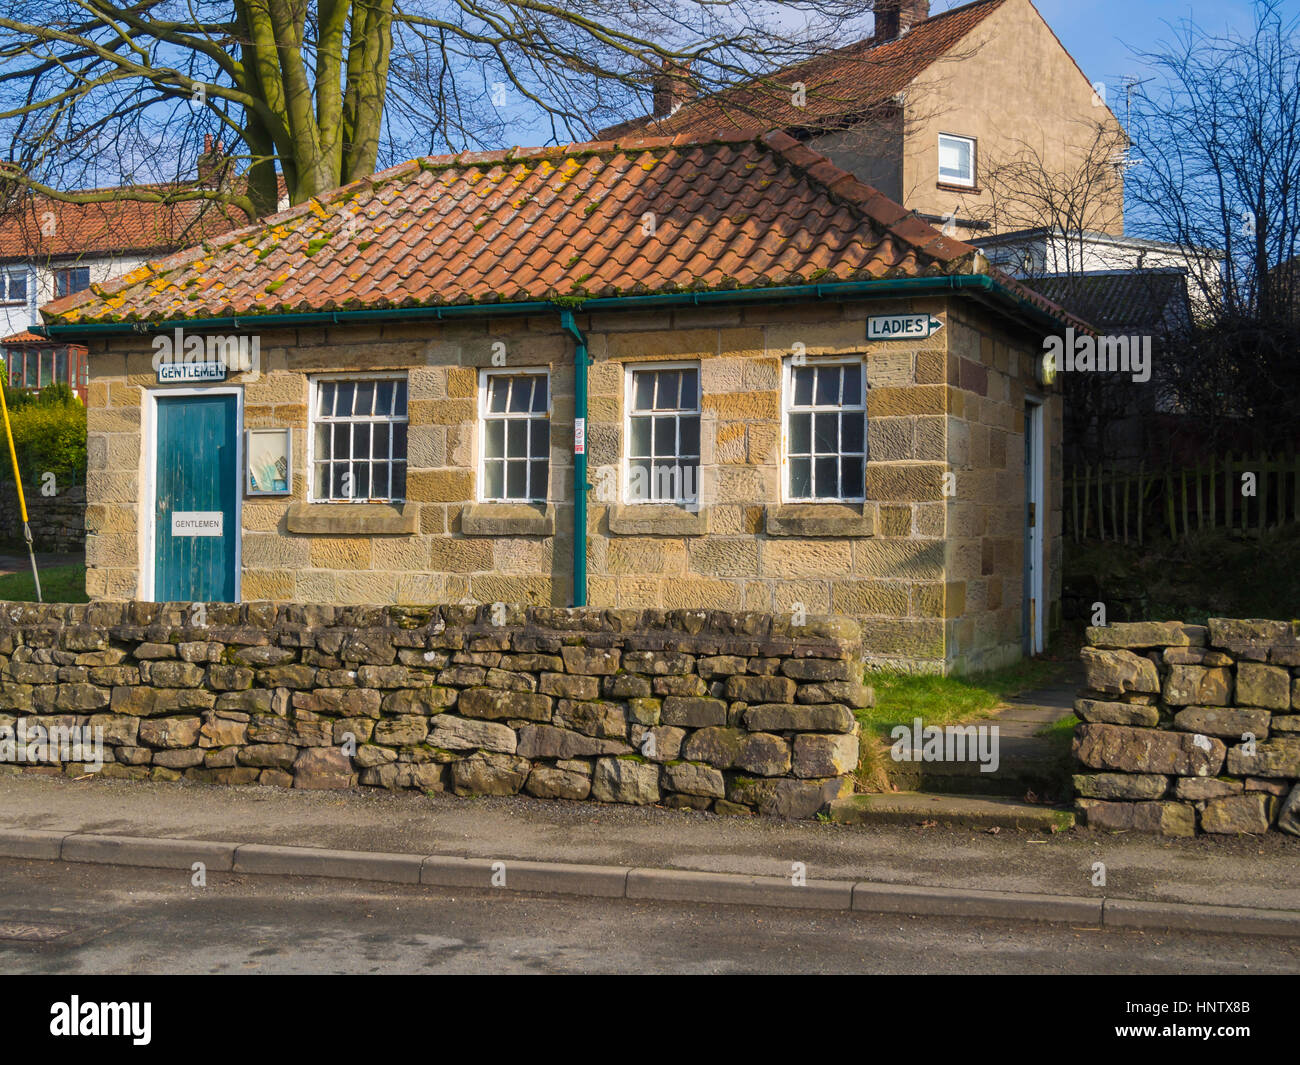 Public Conveniences in the village of Danby  North Yorkshire - Stock Image